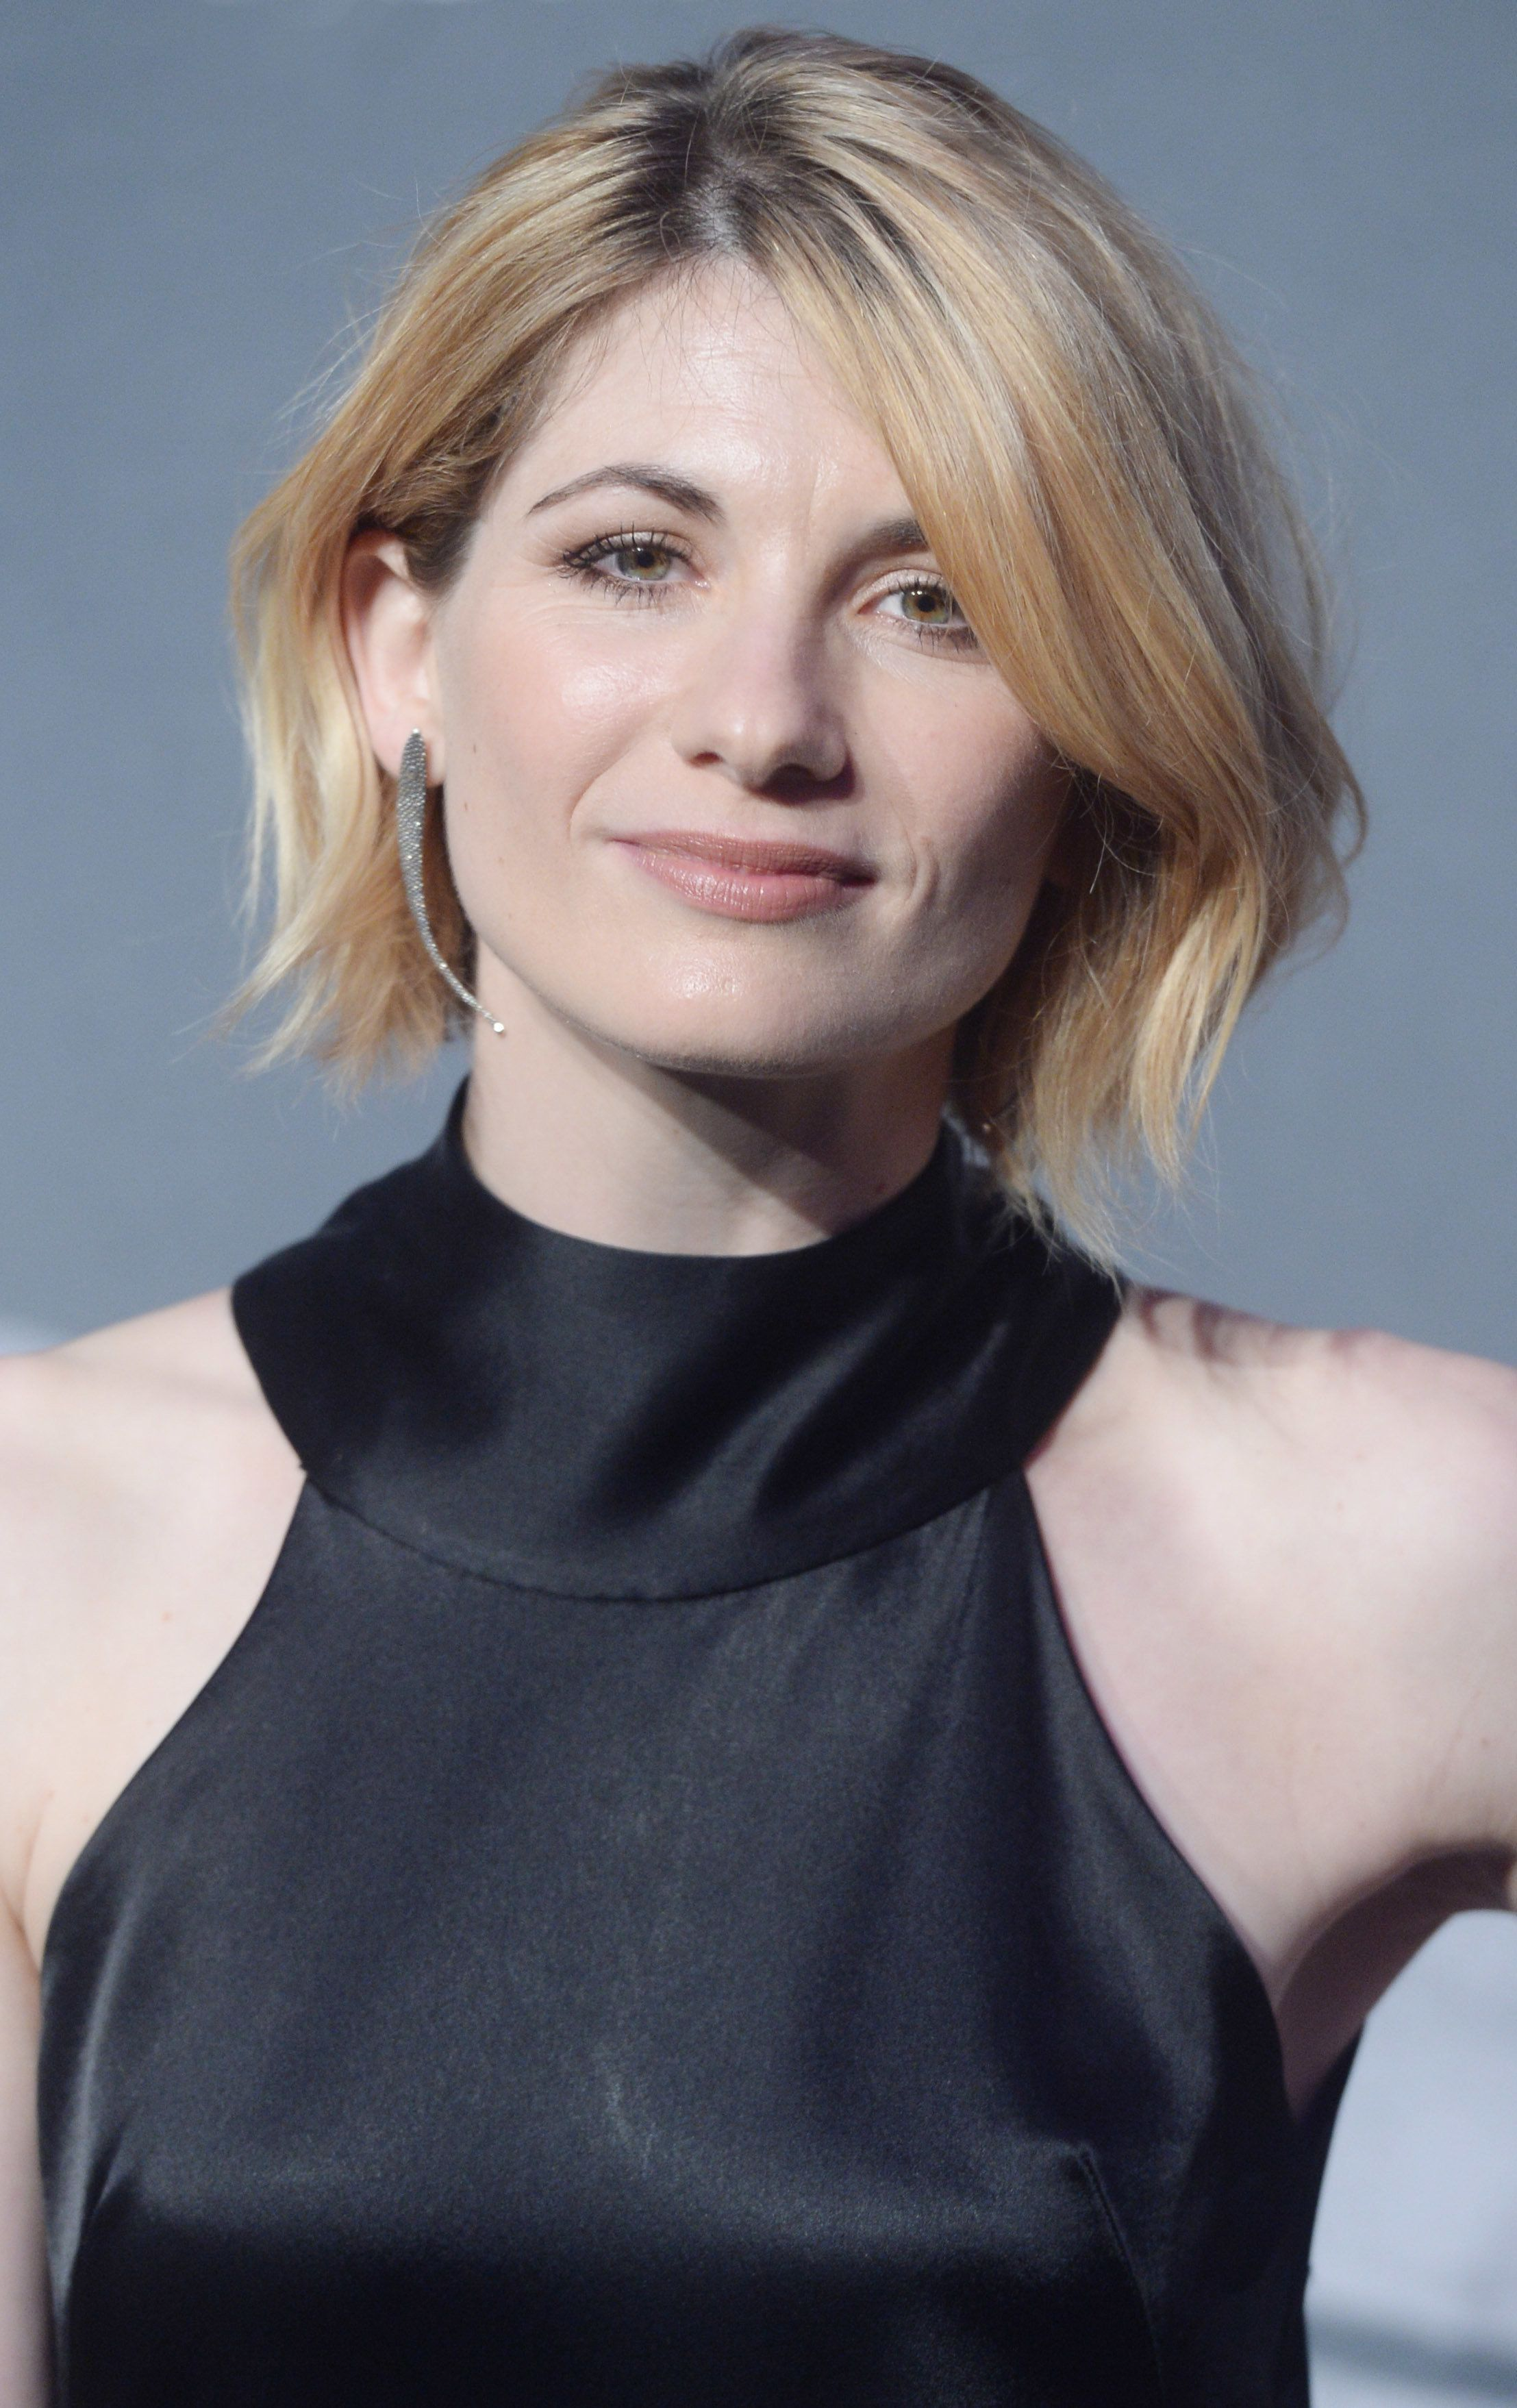 LONDON - DECEMBER 4: Jodie Whittaker attends at The British Independent Film Awards Old Billingsgate Market on December 04, 2016 in London, England.  (Photo by Rune Hellestad/Corbis via Getty Images)